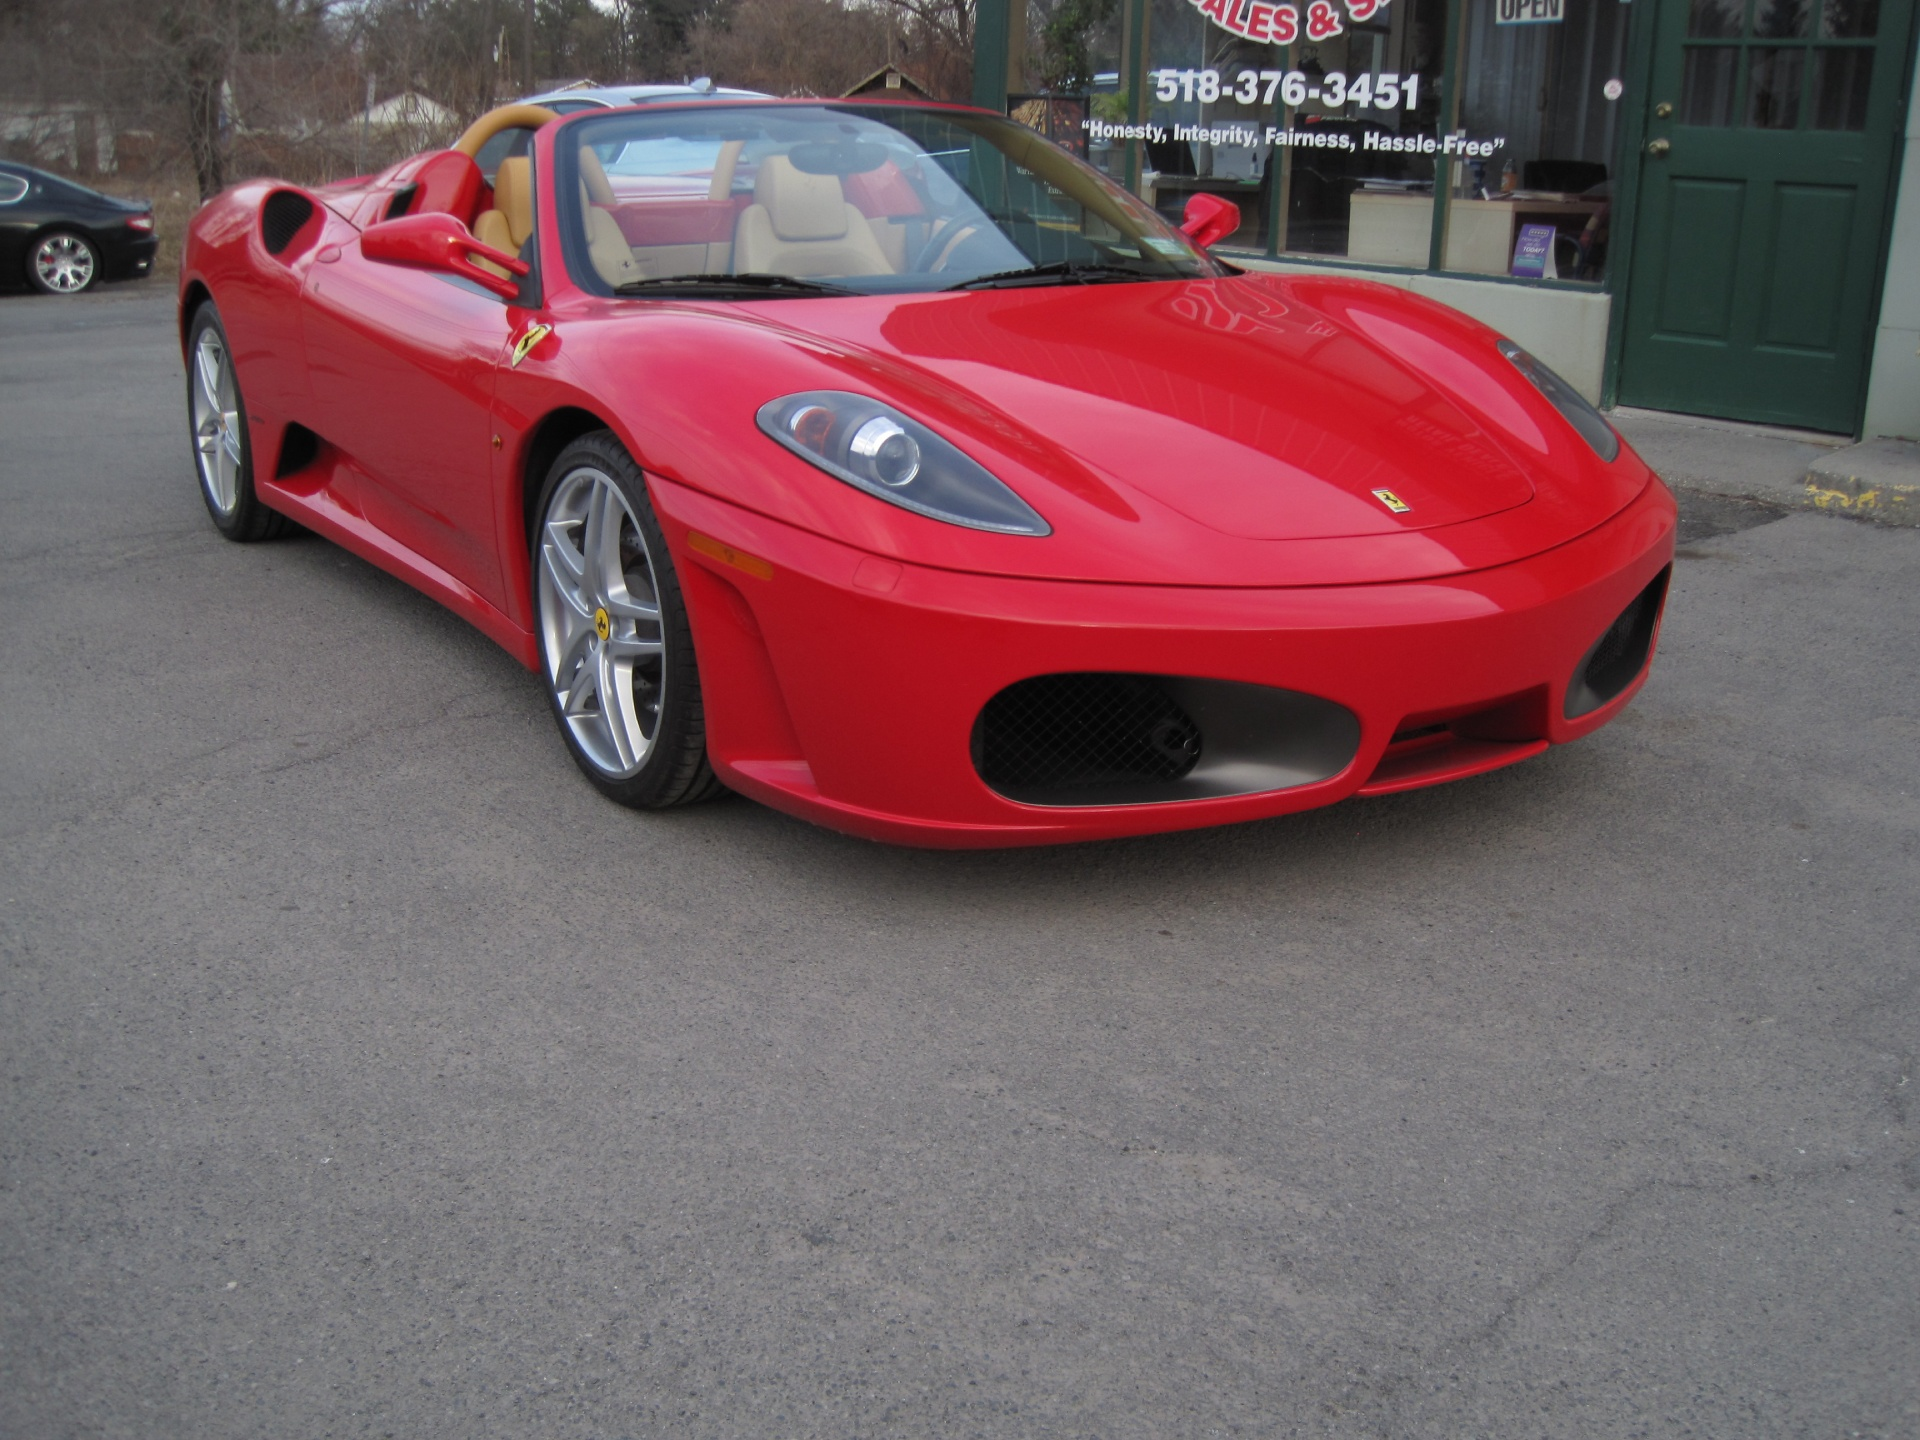 Used 2007 Ferrari F430 F1 Spider LOADED WITH OPTIONS,SHIELDS,RED CALIPERS,PWR DAYTONAS,CARBON FIBE | Albany, NY